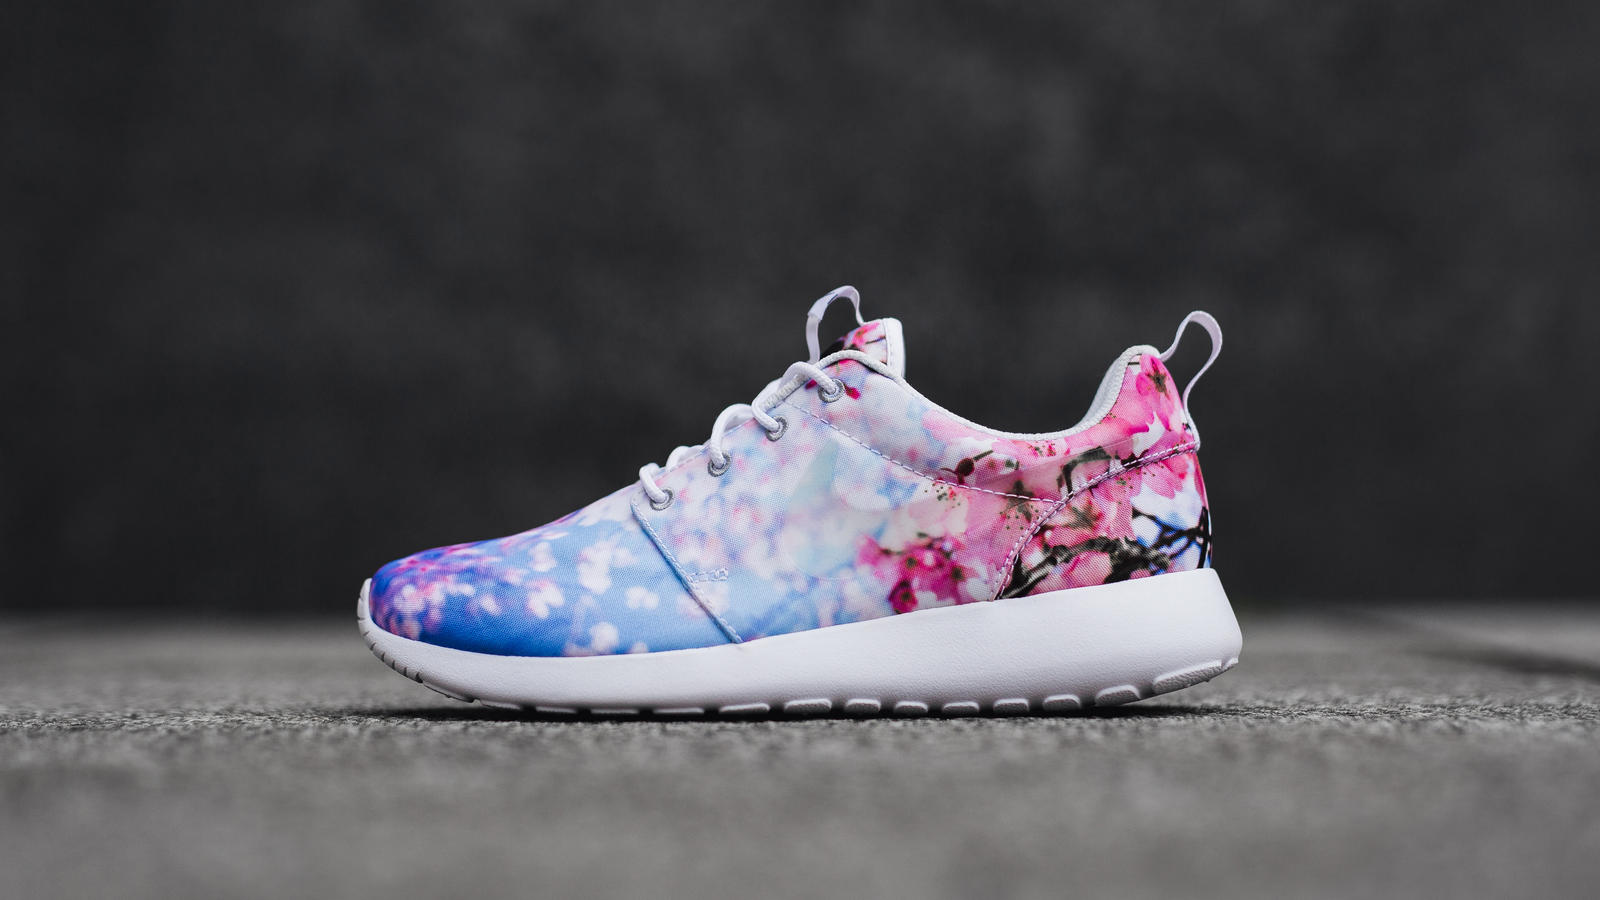 Nike roshe one cherry blossom 3 hd 1600